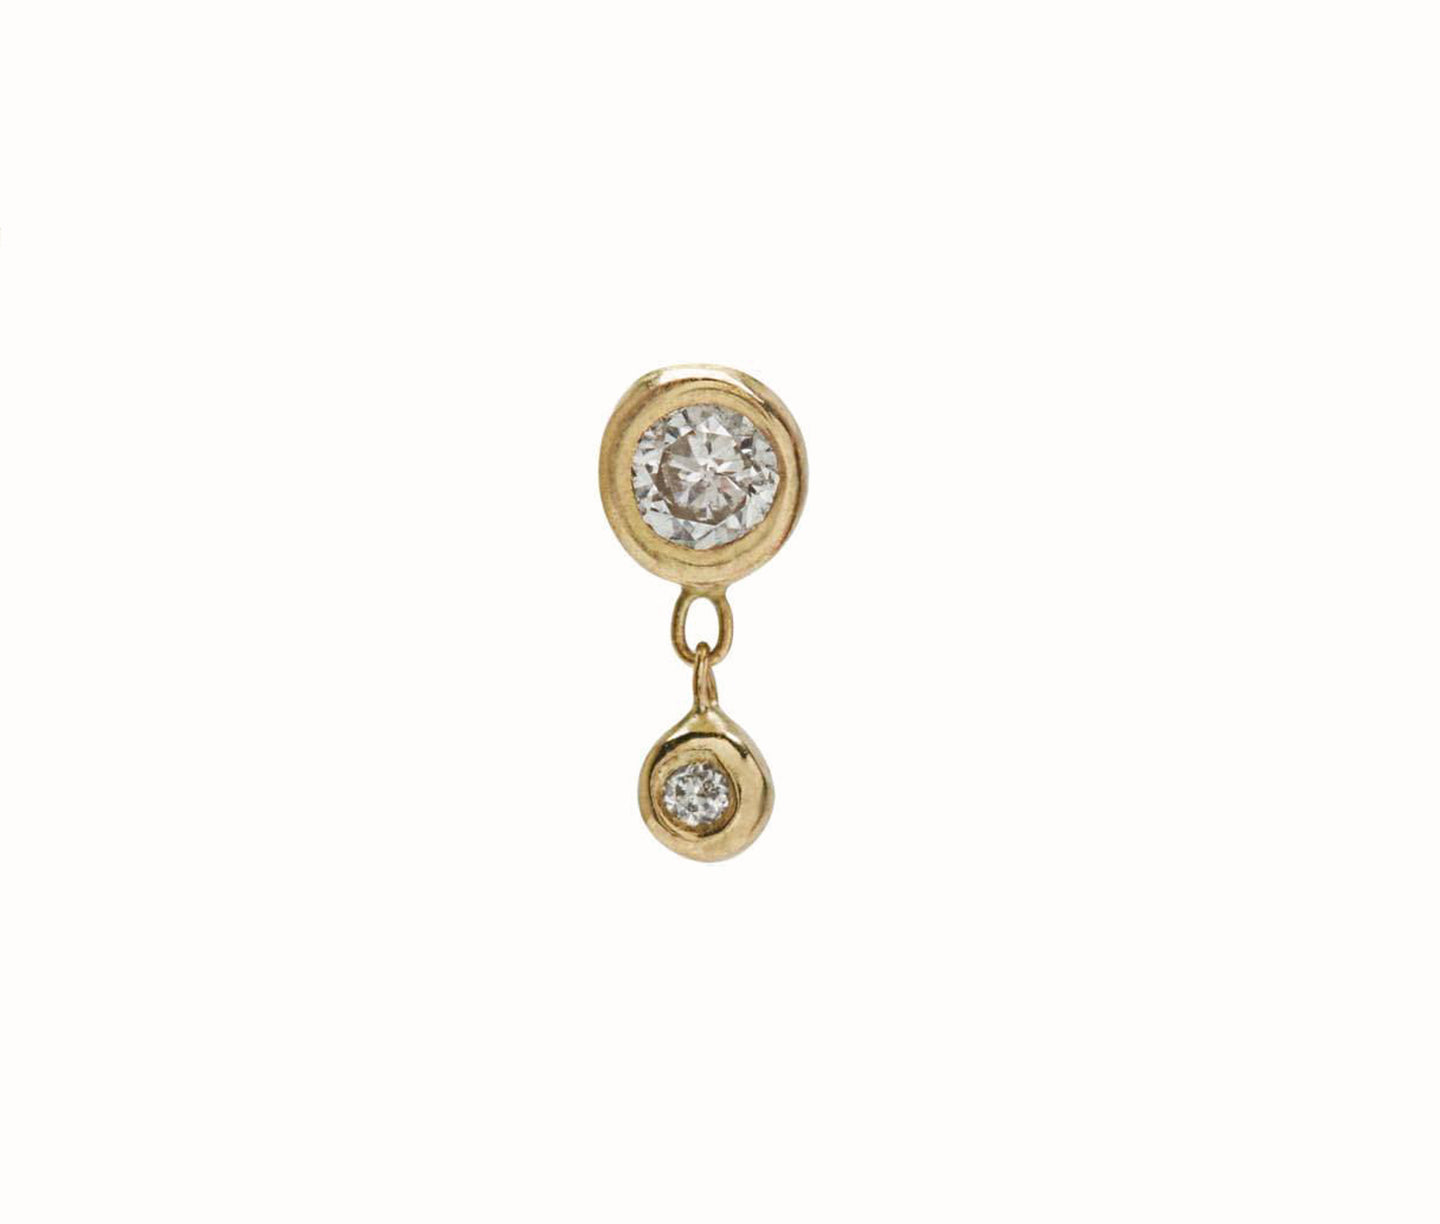 Bezel Drop 10K Yellow Gold / Diamond (Single)